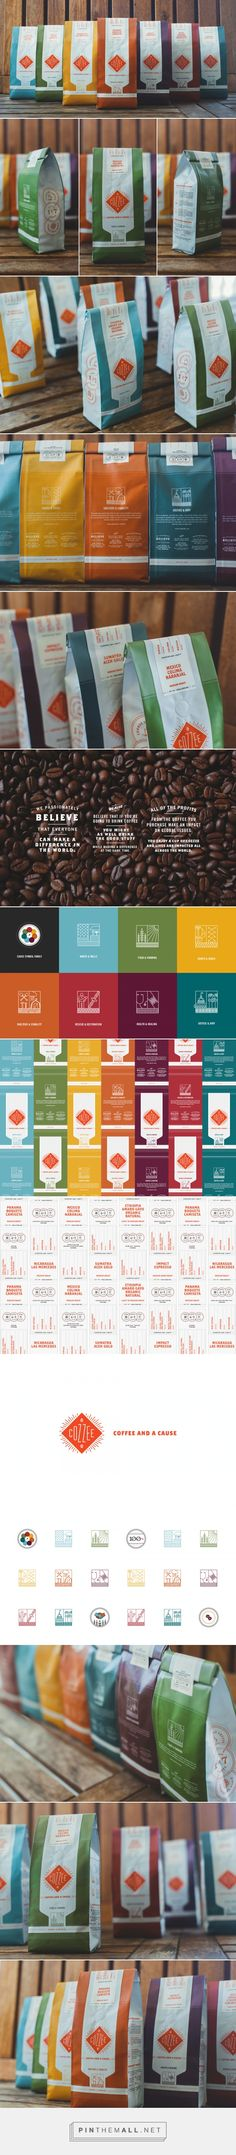 Cozzee Coffee — The Dieline - Branding & Packaging... - a grouped images picture - Pin Them All